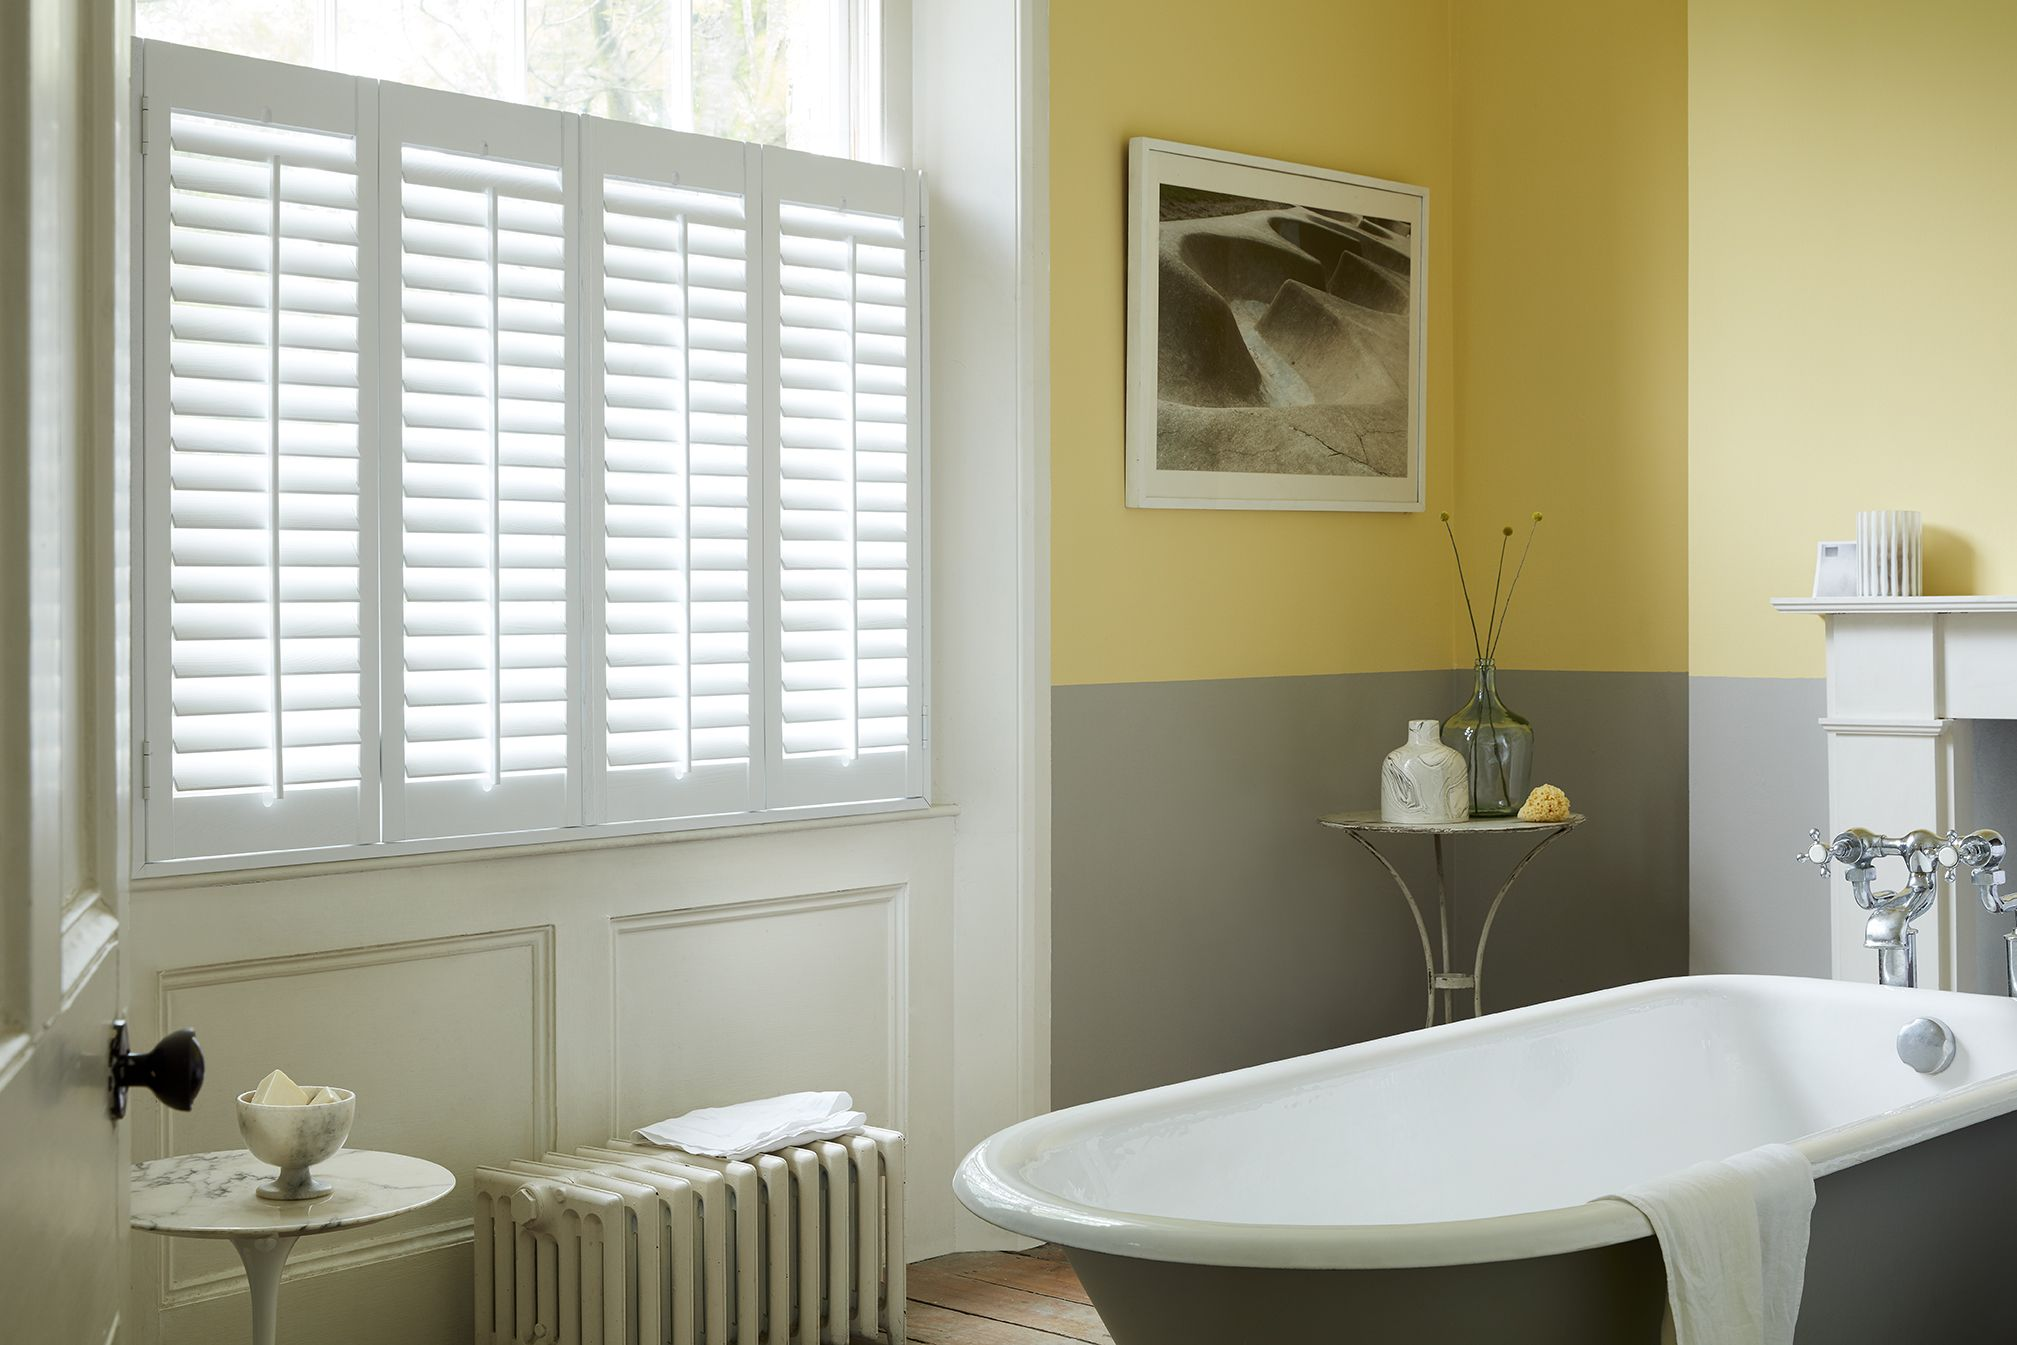 Incroyable ... These Window Shutters Are 100% Waterproof And Highly Durable. They Are  Ideal For Rooms With A High Level Of Humidity Such As Bathrooms, Kitchens,  ...